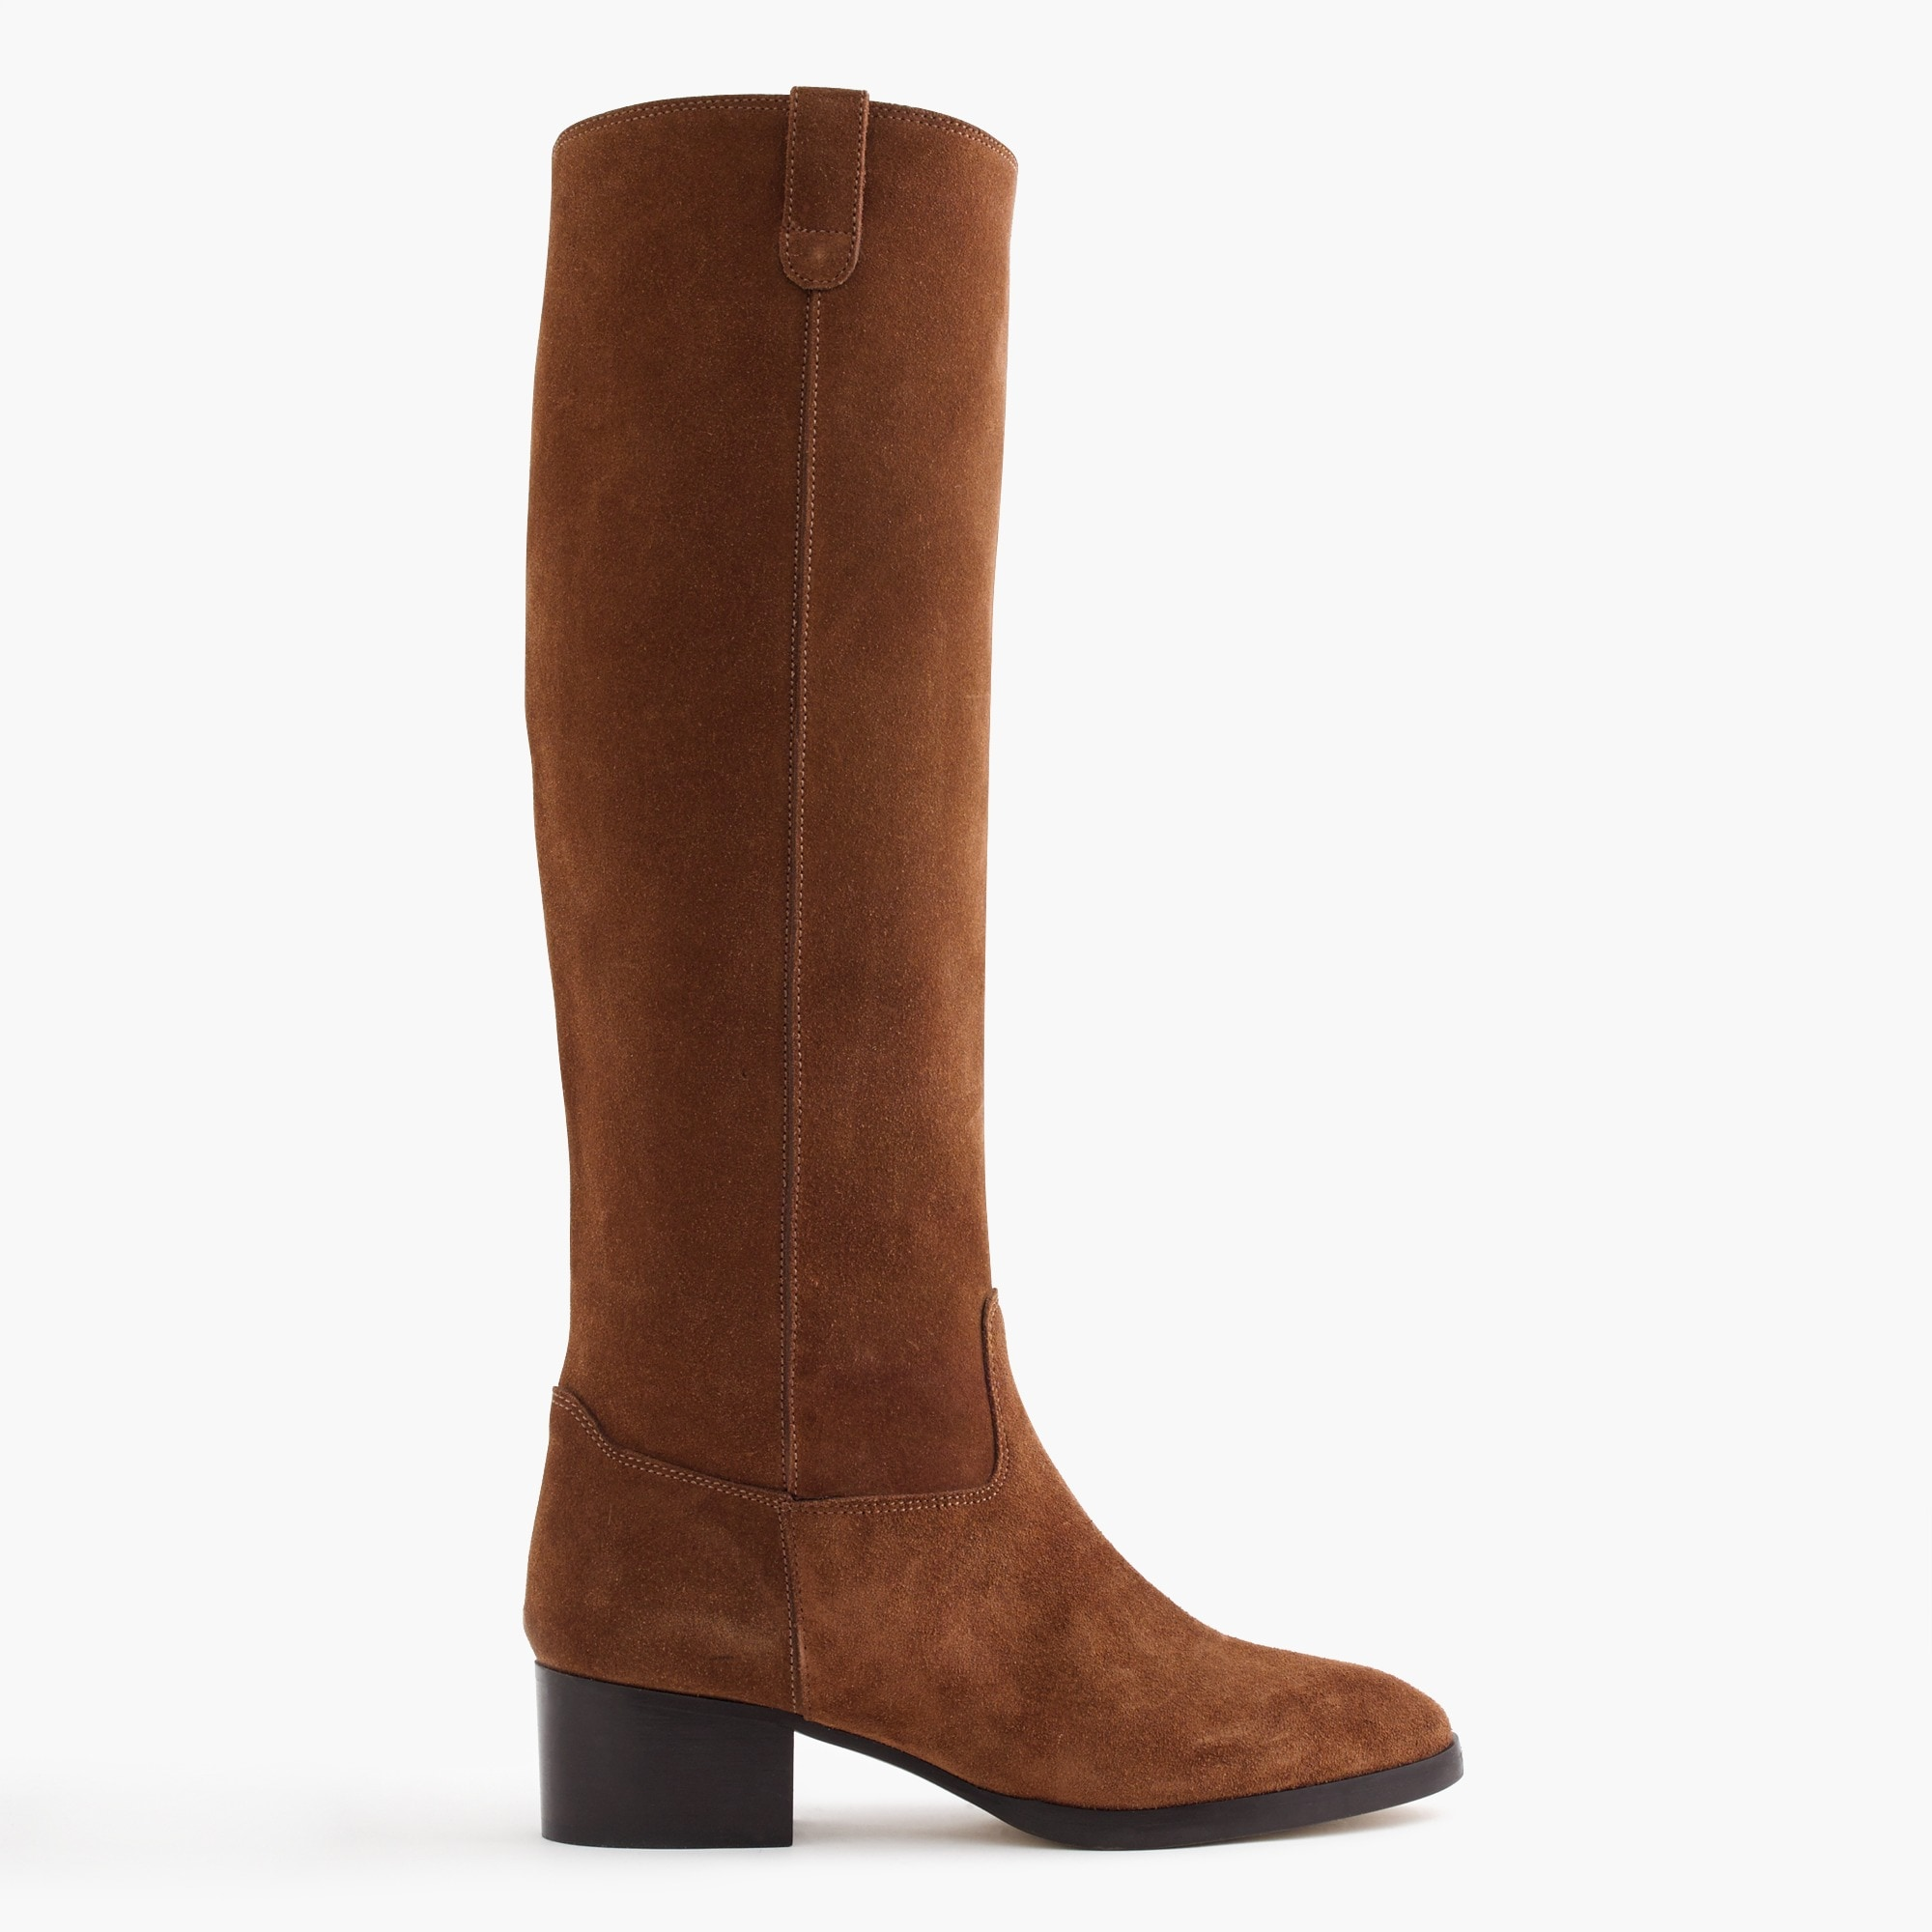 suede knee boots with tabs : women's tall boots